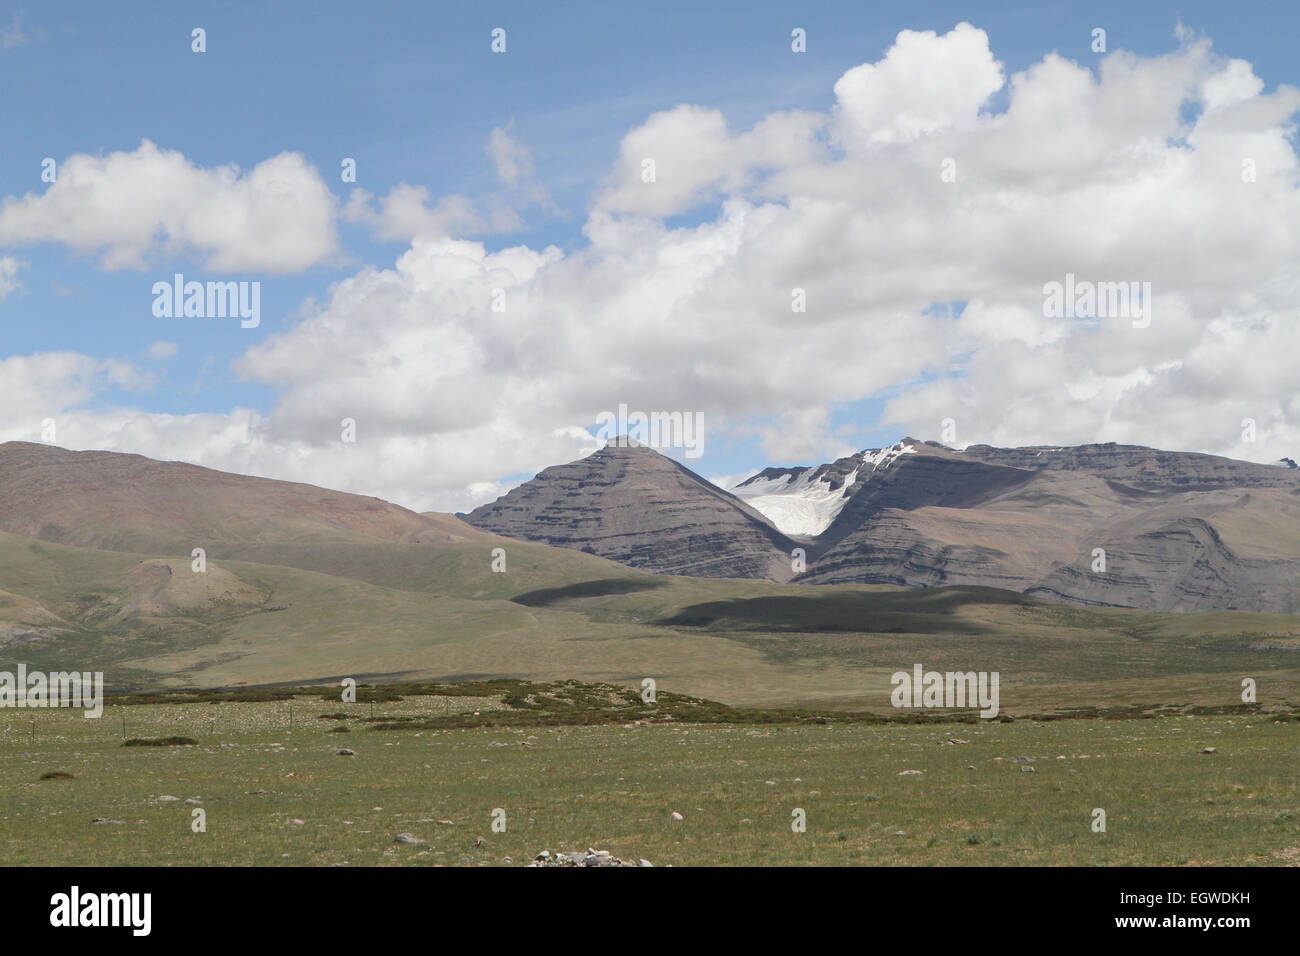 Foothills of the Tibetan landscape with mountains, China - Stock Image